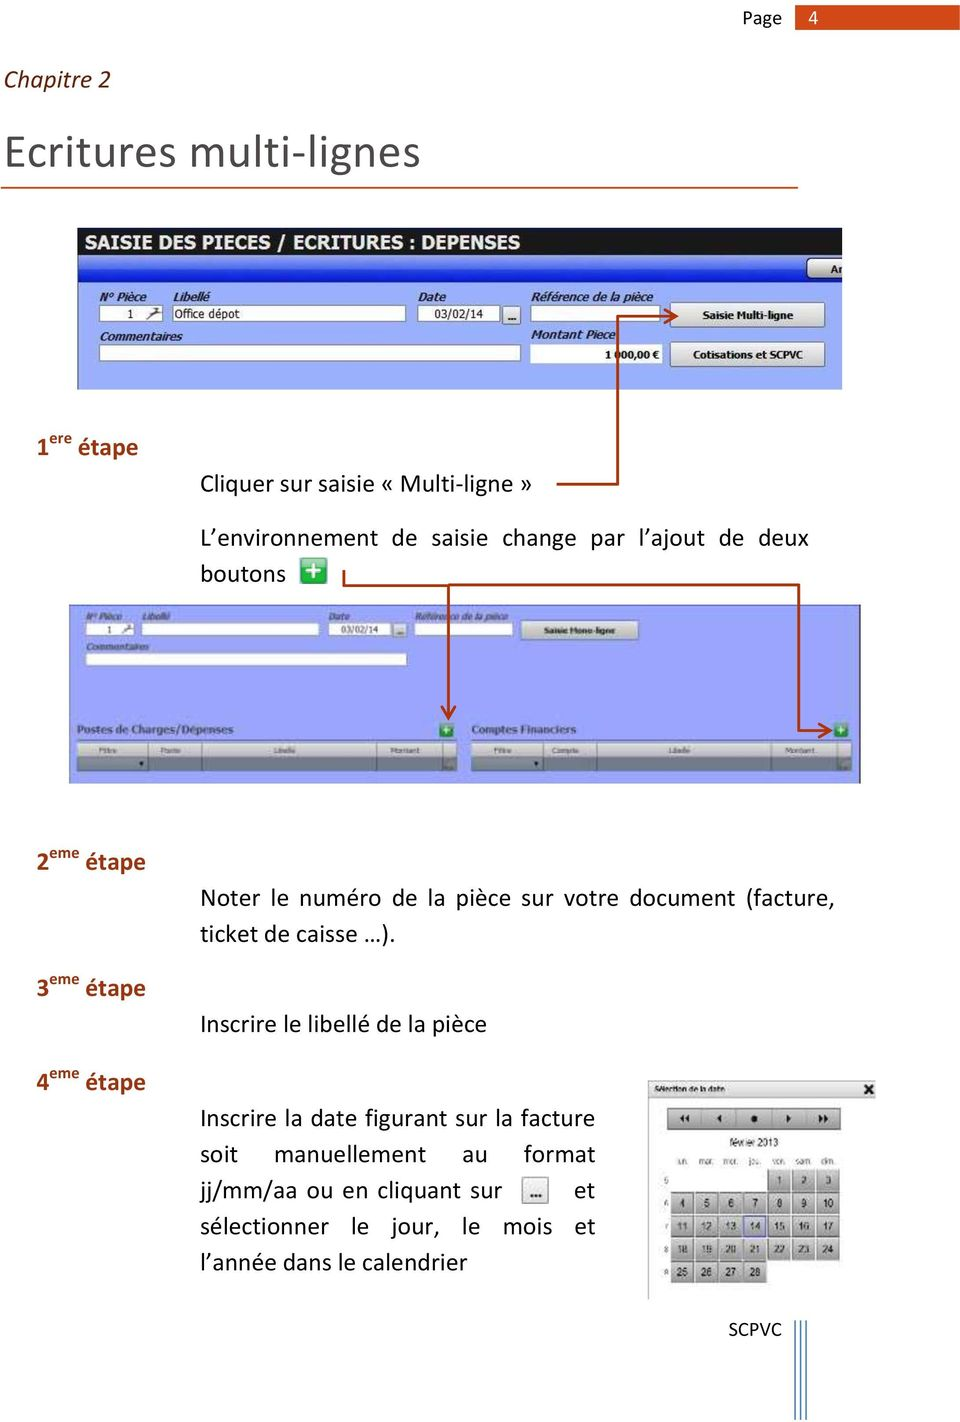 document (facture, ticket de caisse ).